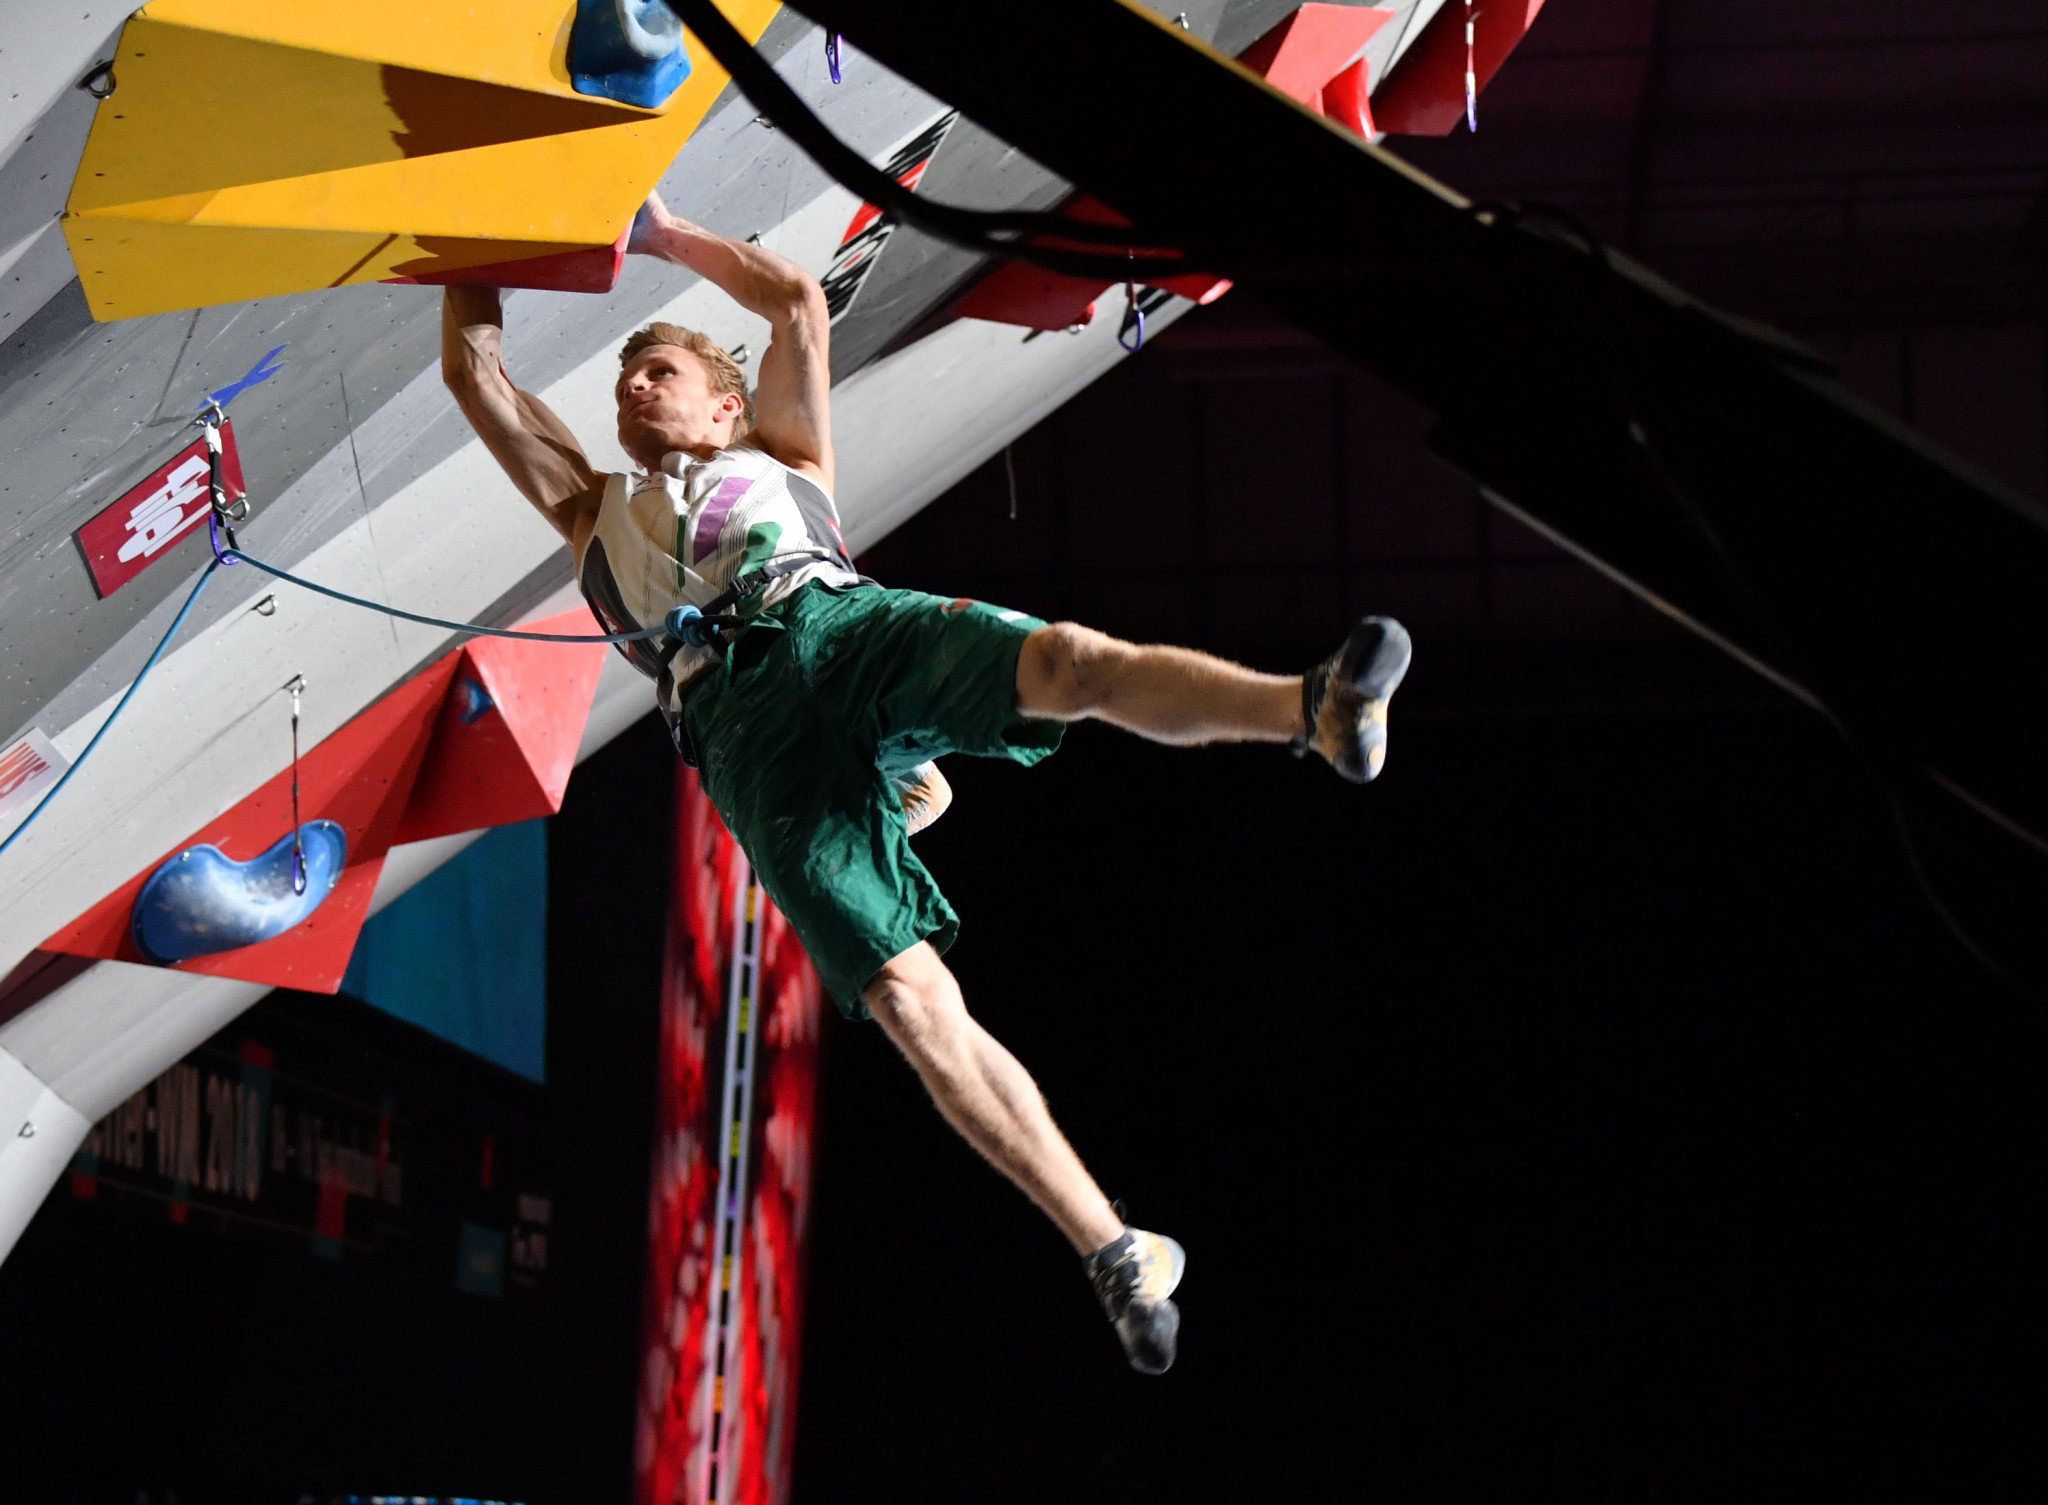 Rankings leaders in action as IFSC World Cup heads to China